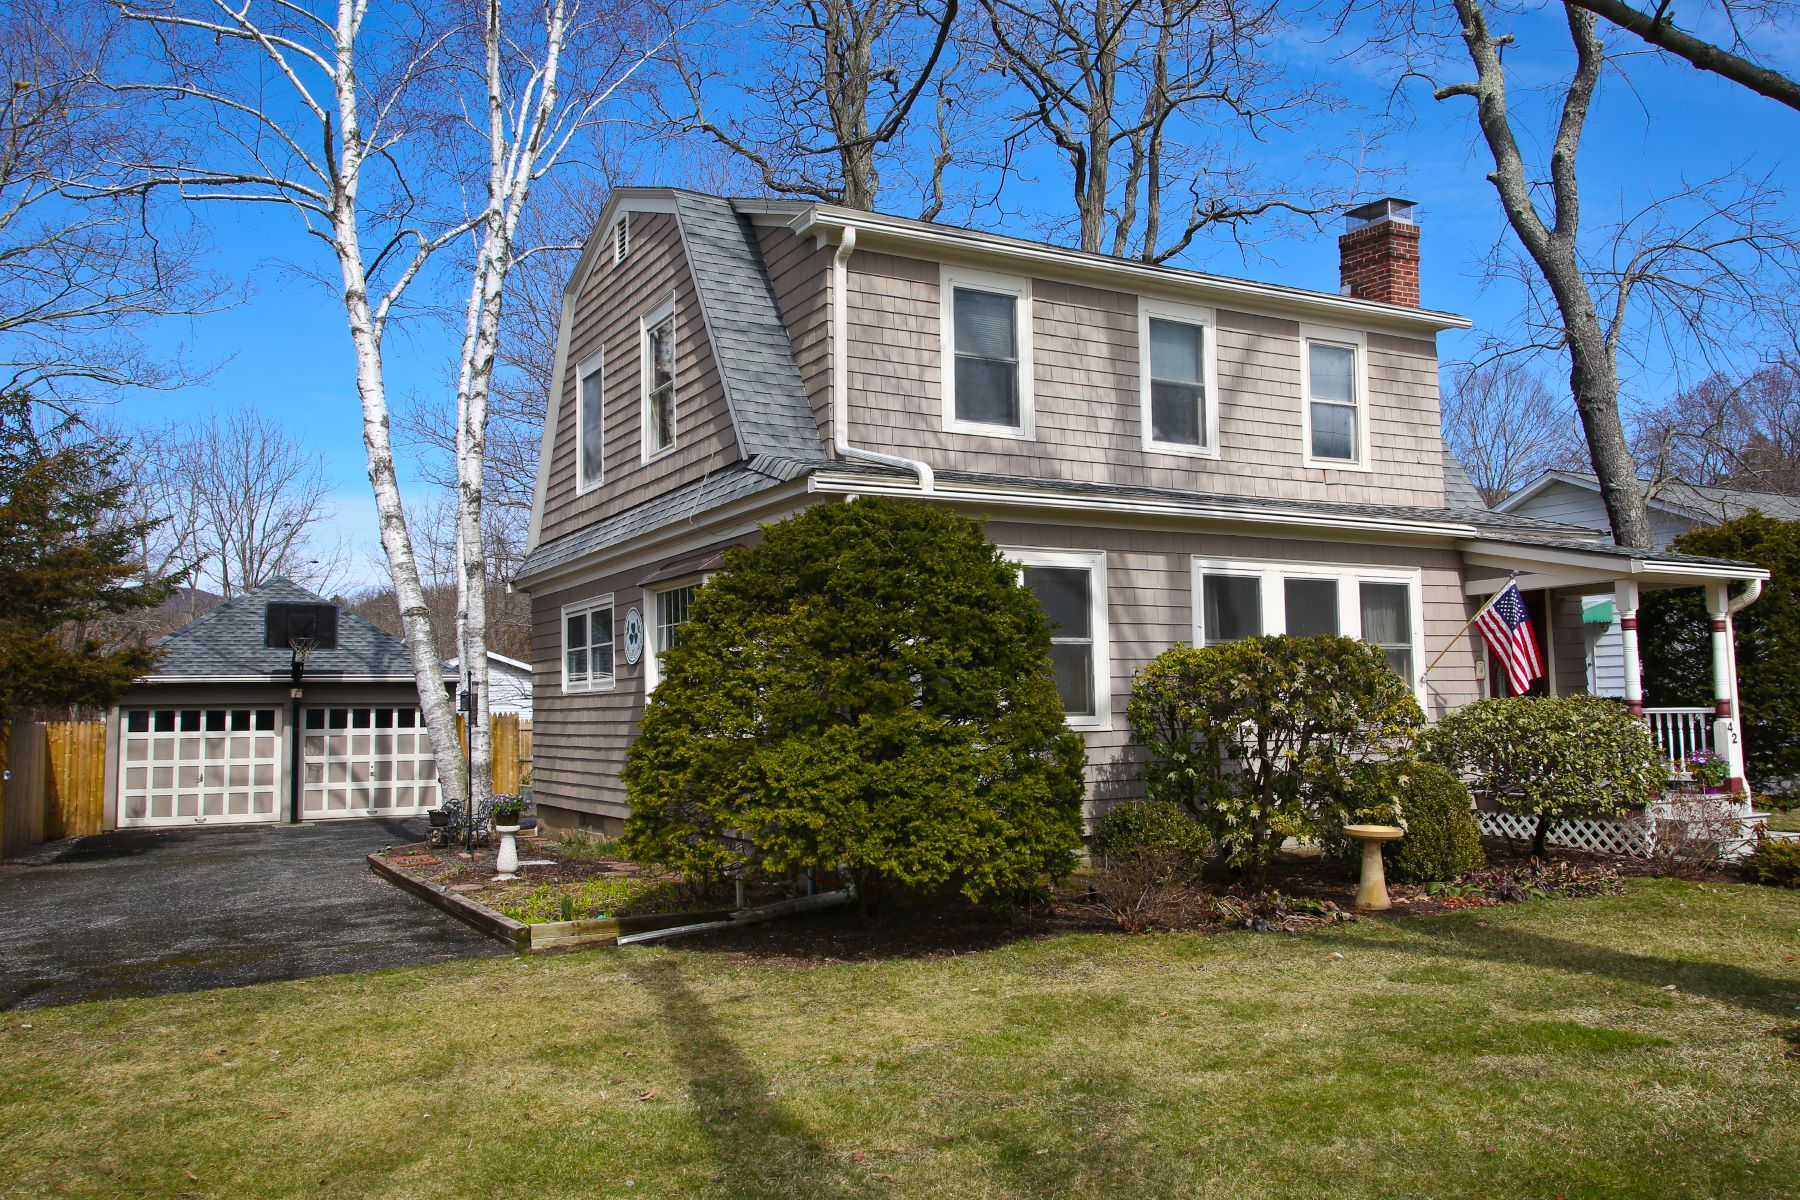 Single Family Home for Sale at In Town Charming Home 42 Elizabeth Street, Kent, Connecticut, 06757 United States